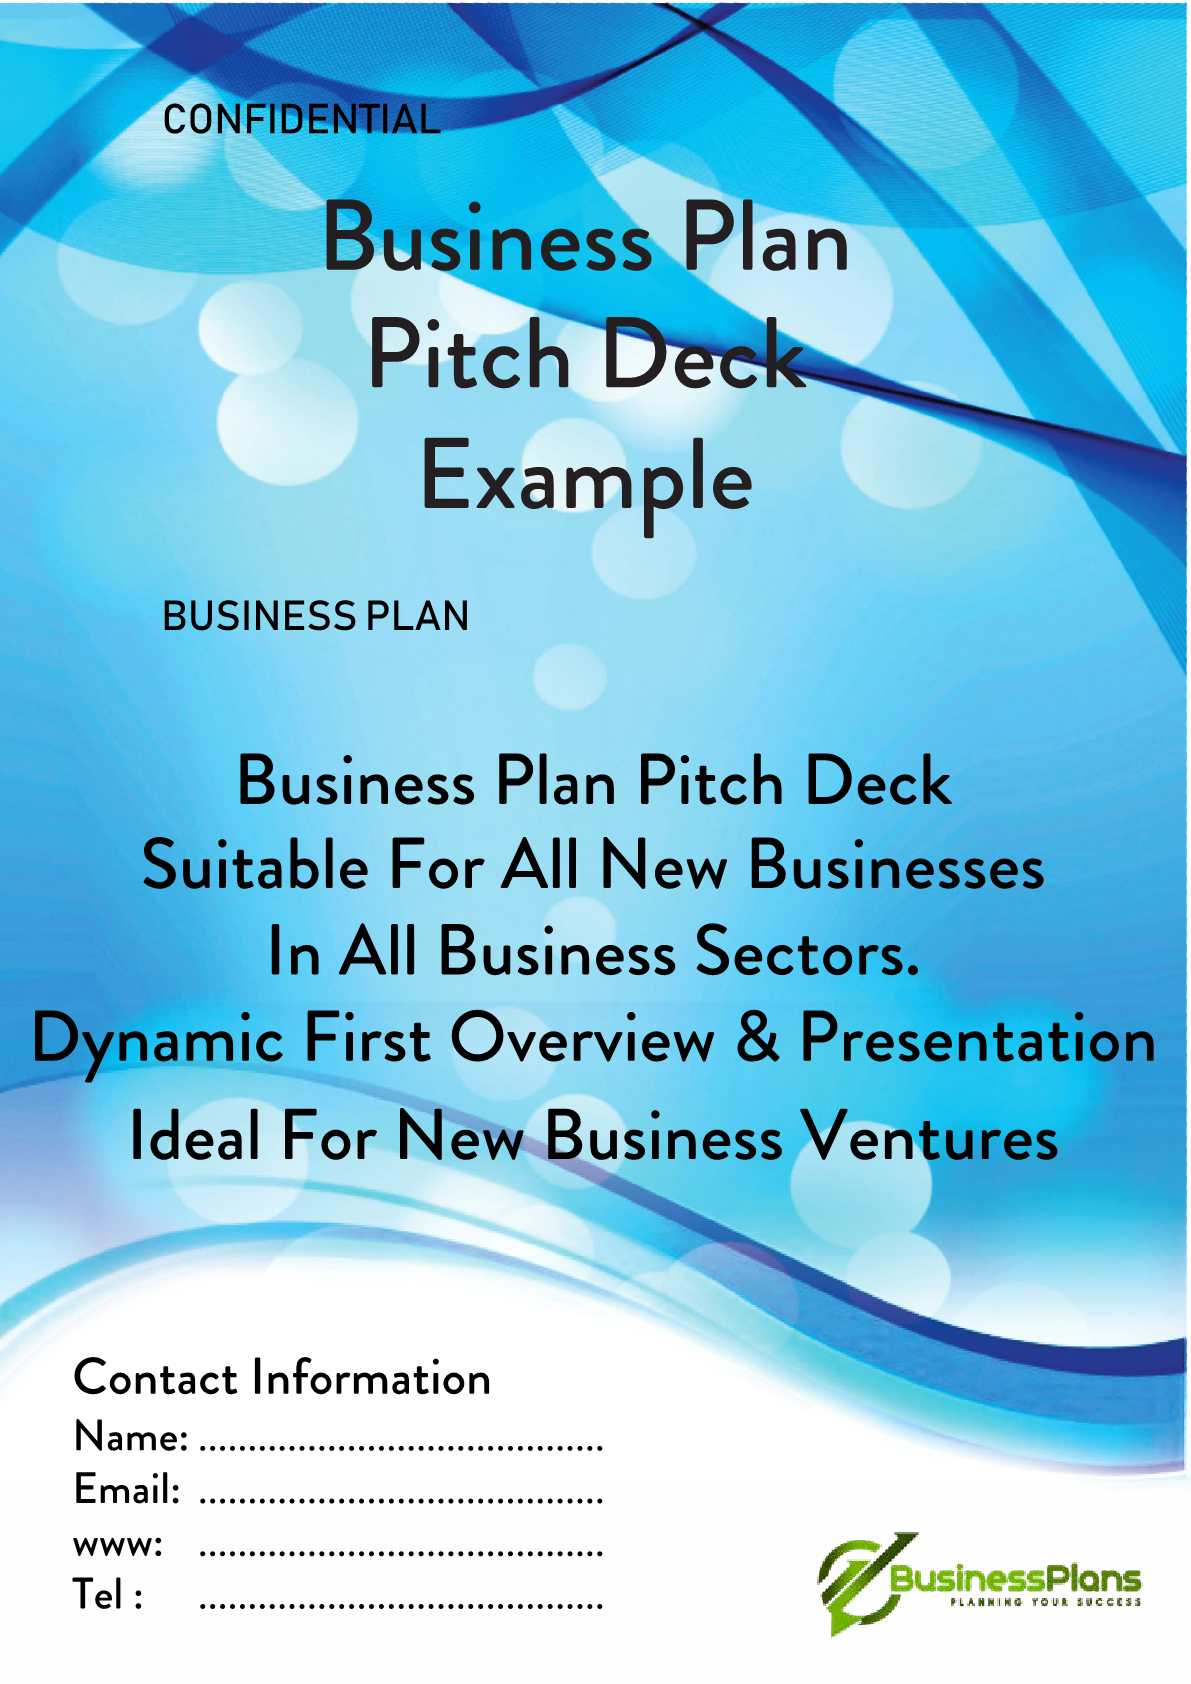 Pitch deck example plan